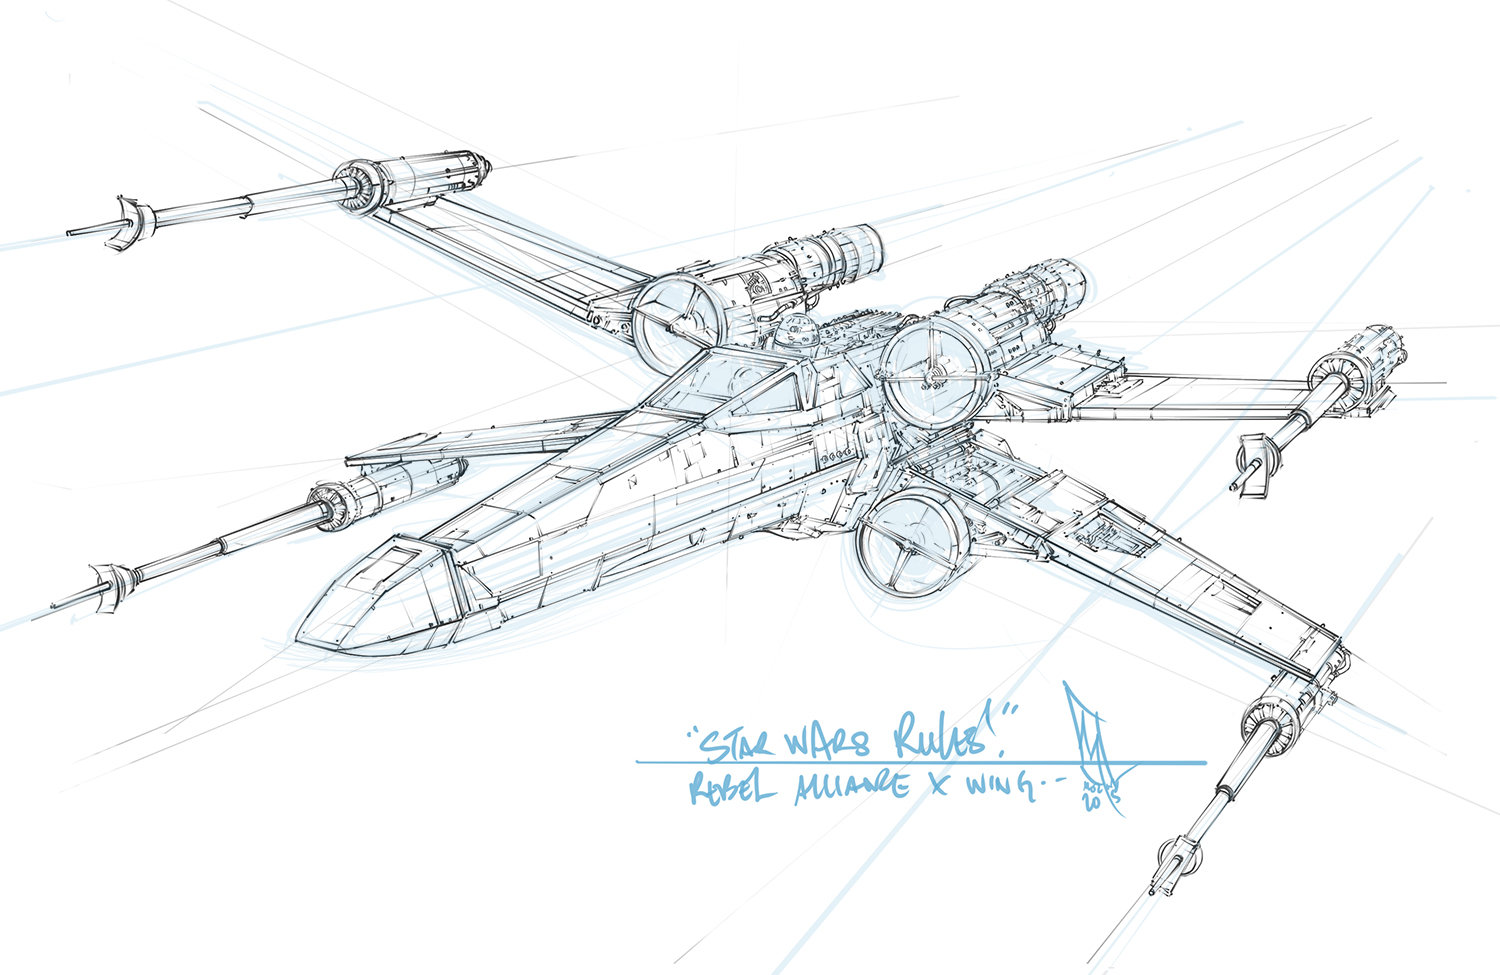 star wars x wing coloring pages - star wars t 65 incom x wing sketch by shane molina